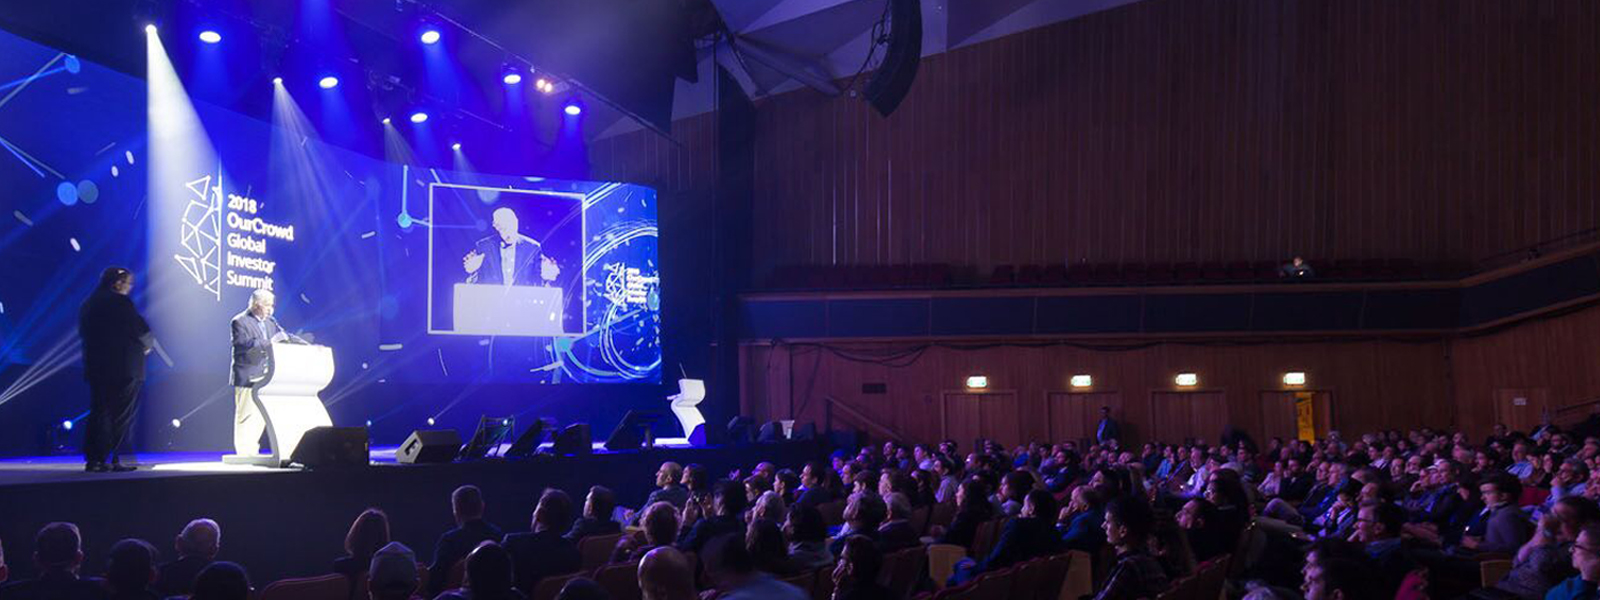 Global Impact: Announcing the Theme for the 2019 OurCrowd Global Investor Summit